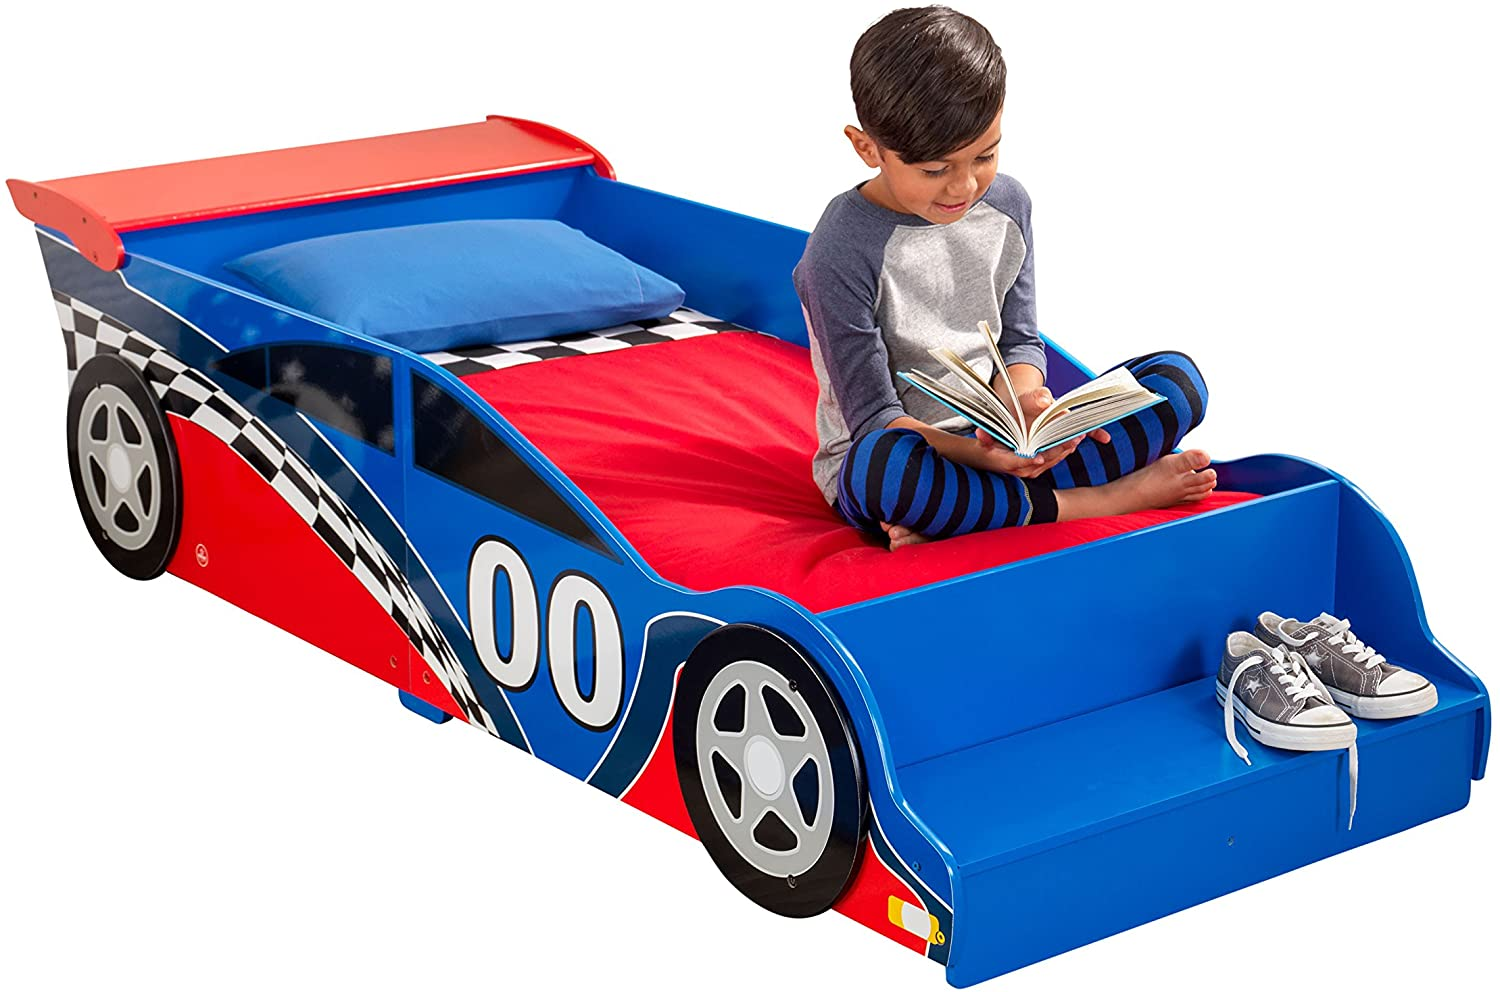 Reviewing the Best Race Car Toddler Bed from KidKraft 4